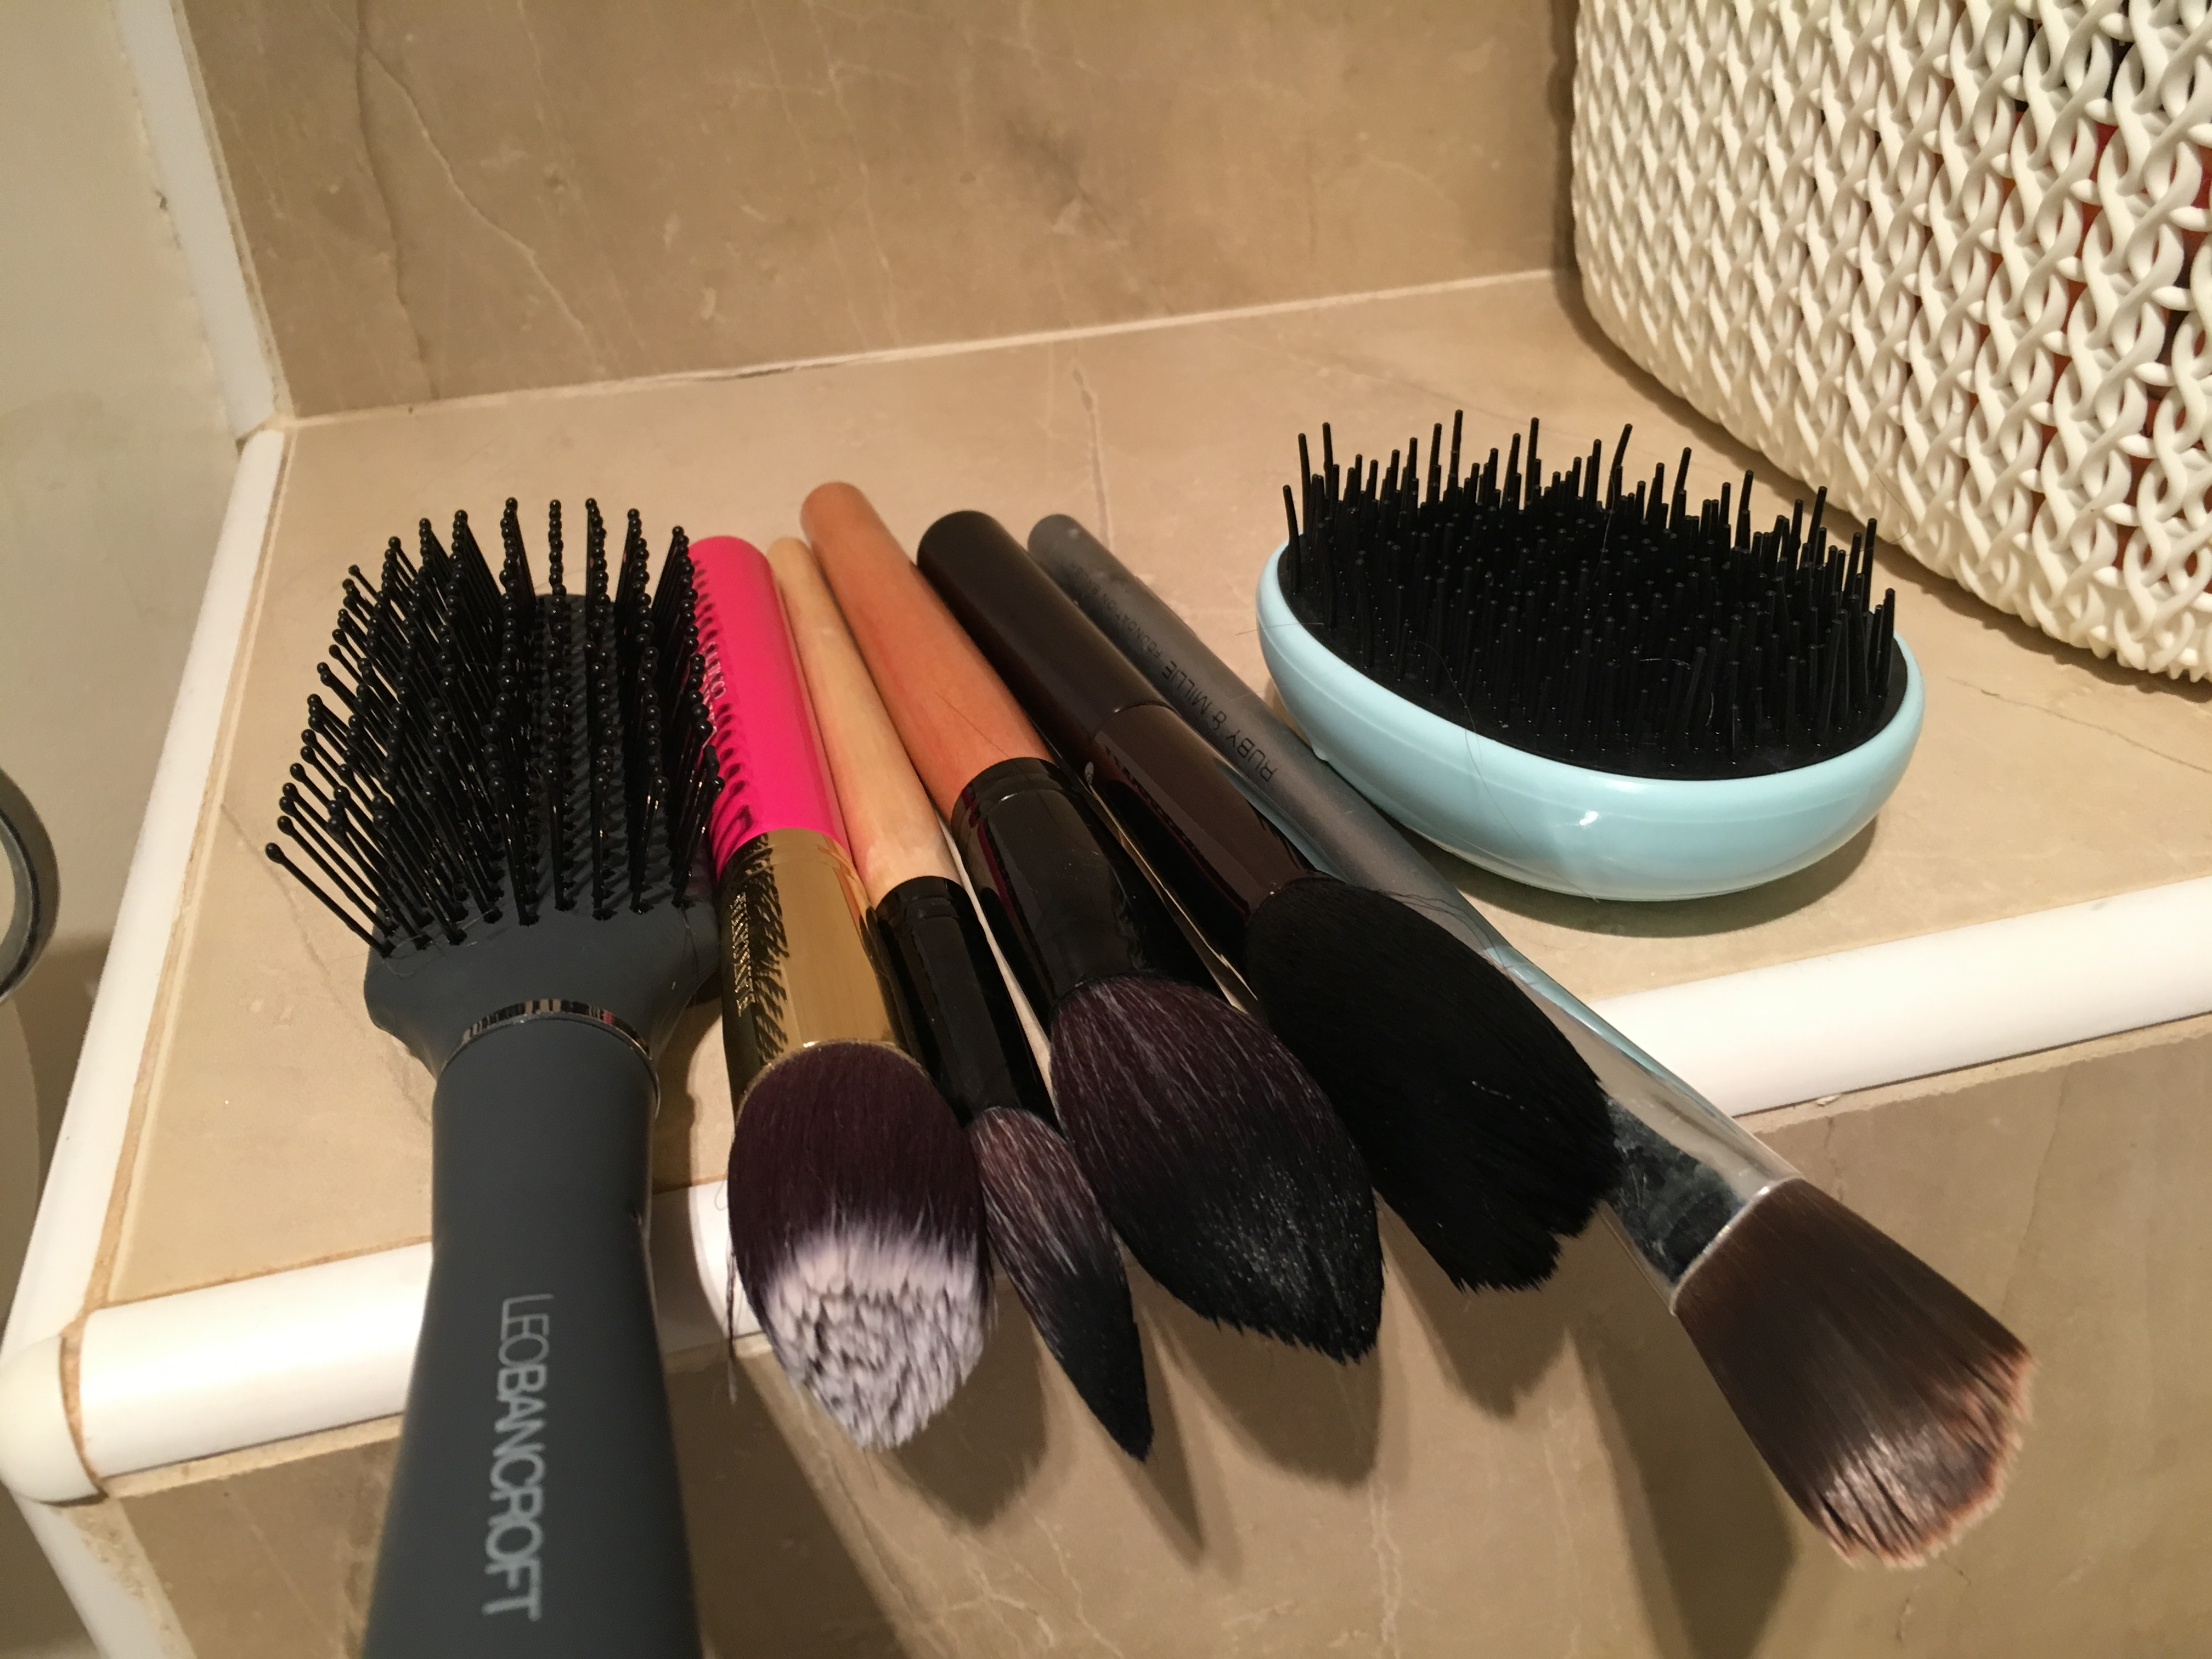 Say goodbye to messy makeup brushes